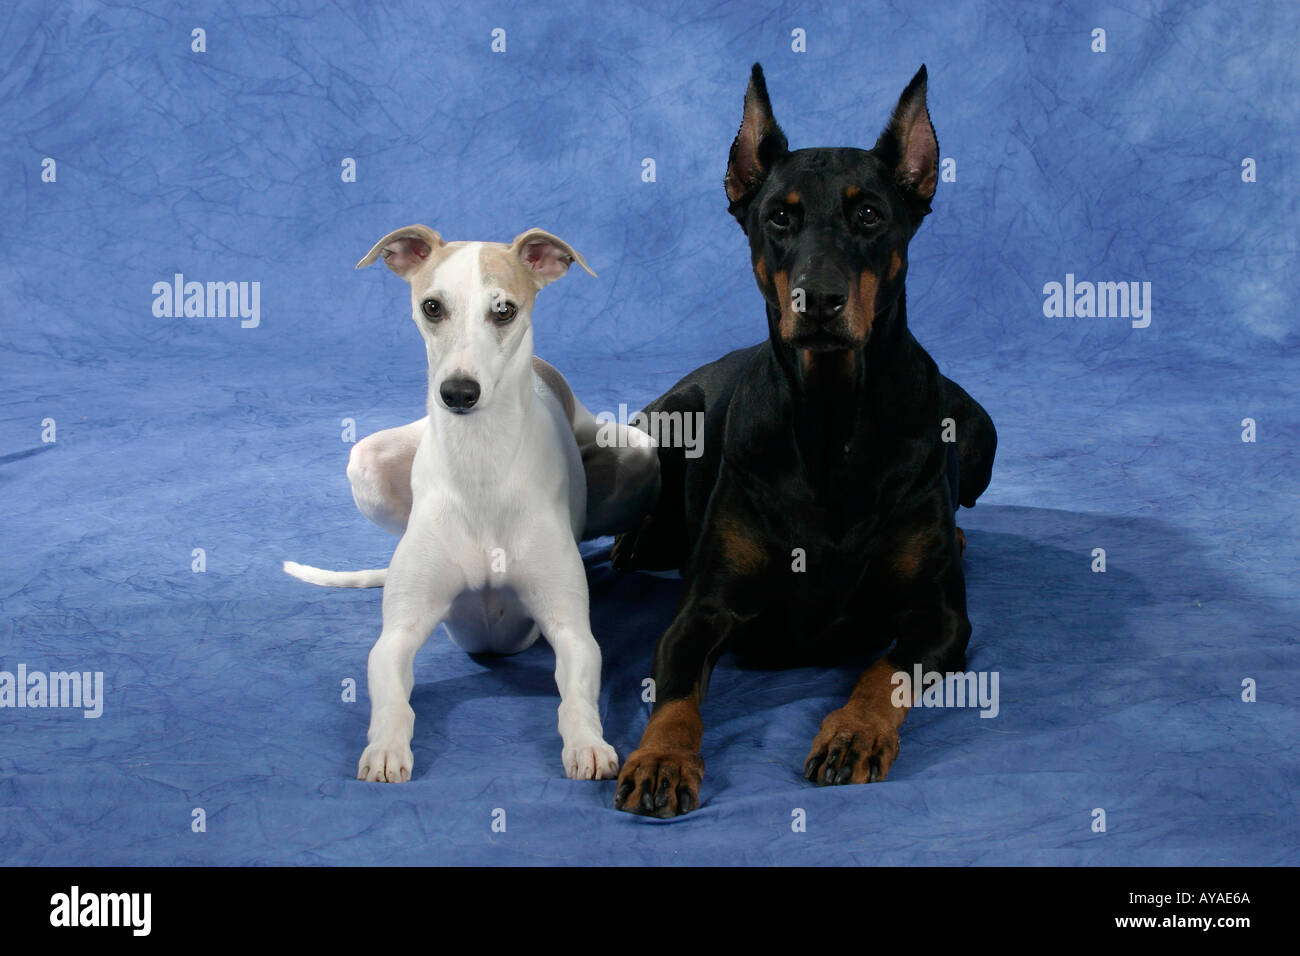 Dobermann Pinscher and Whippet Dobermann und Whippet Saeugetiere mammals animals Haushund domestic dog Haustier Heimtier pet - Stock Image